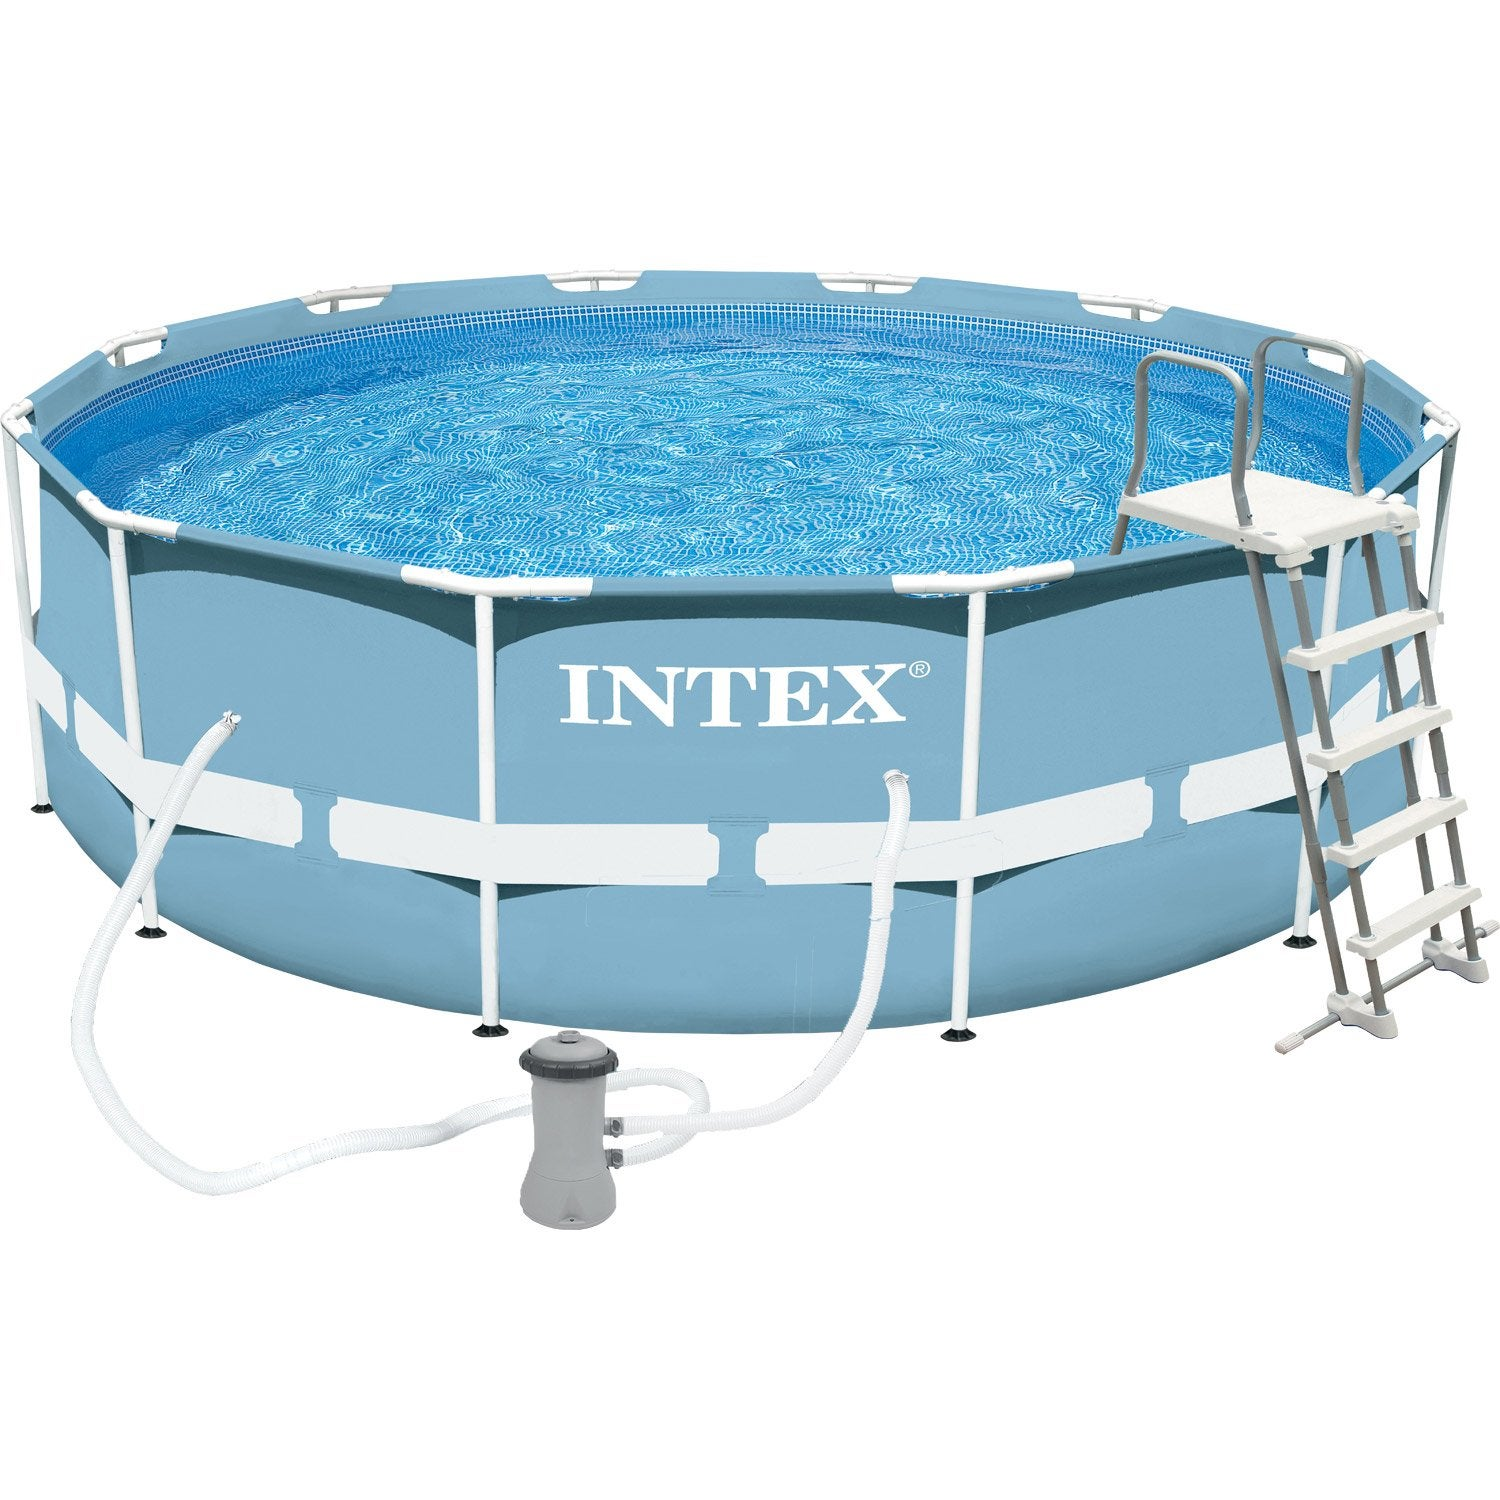 Piscine hors sol autoportante tubulaire prism frame intex for Piscine tubulaire